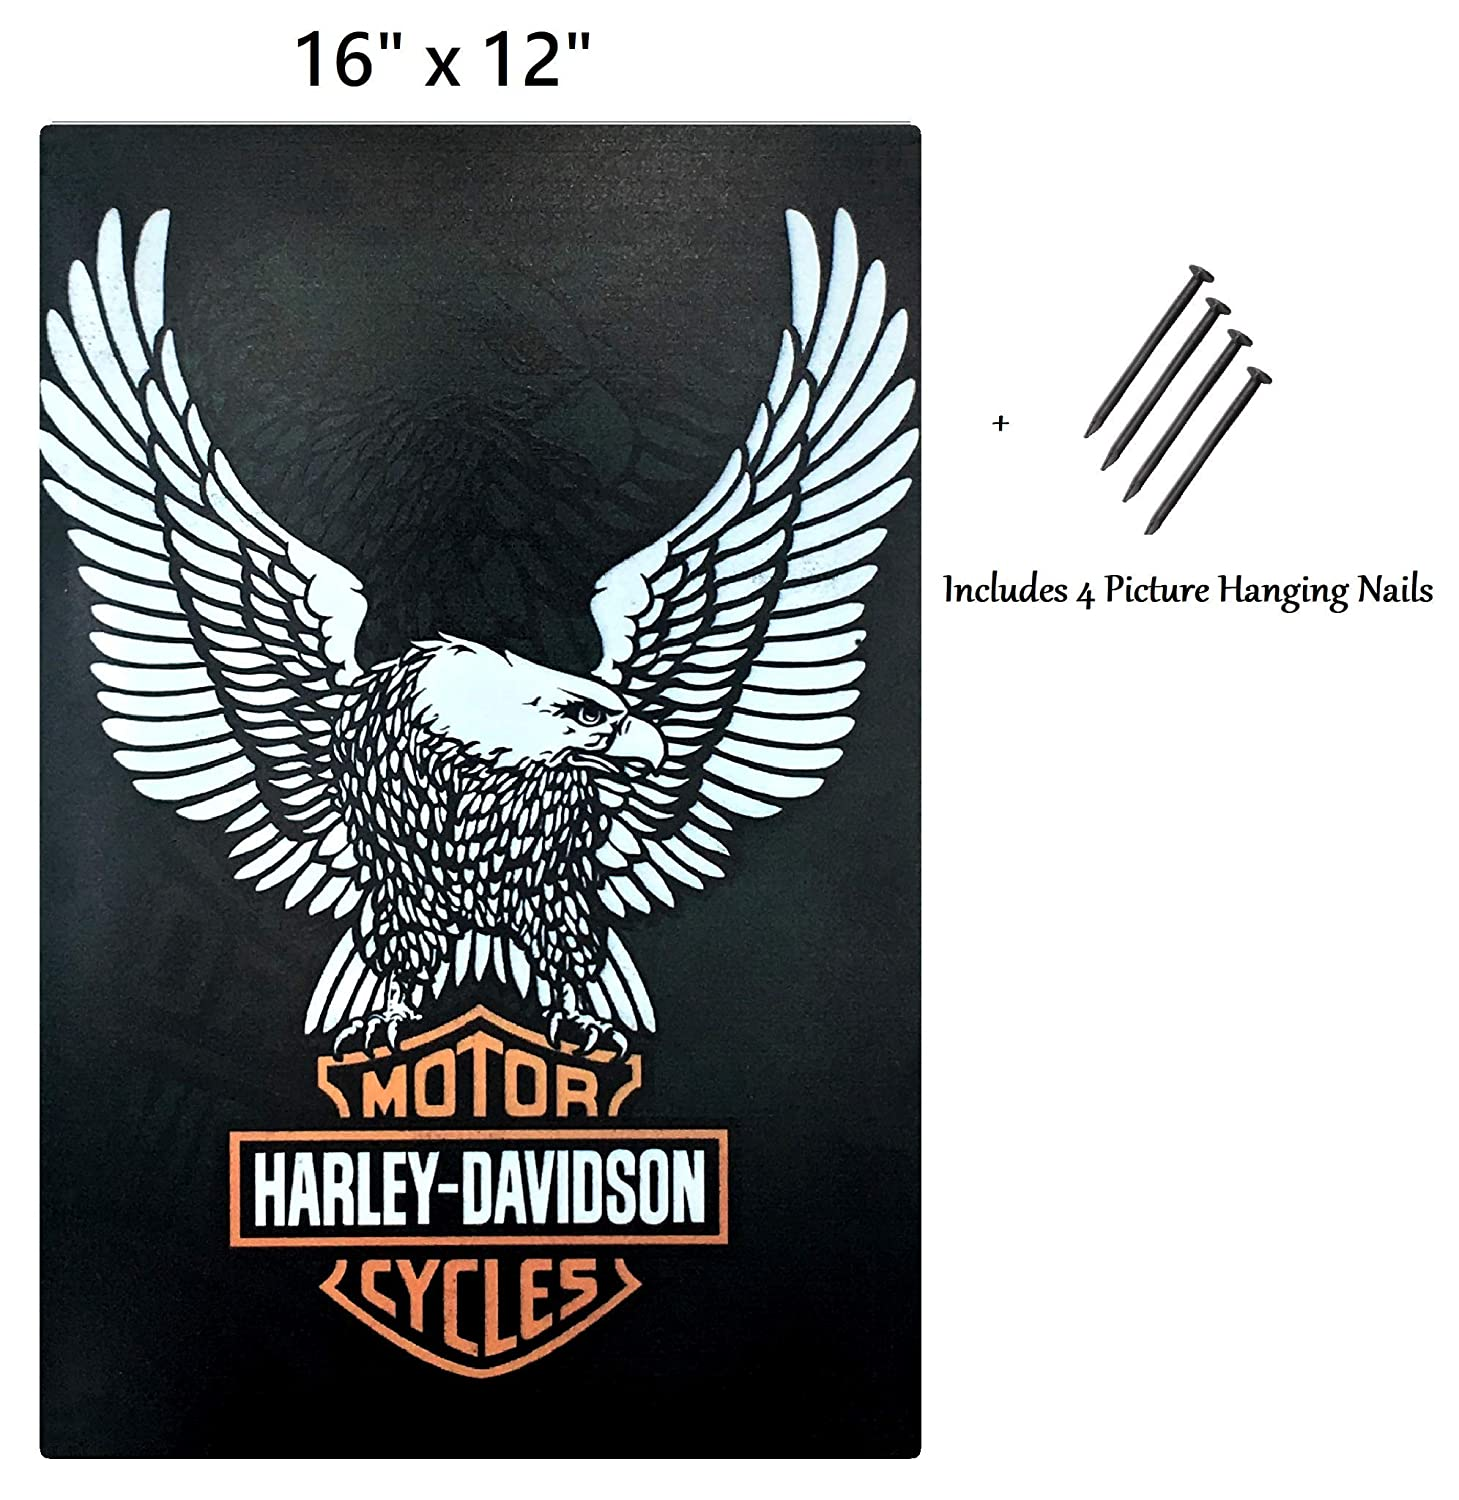 UNiQ Designs Harley Davidson Metal Signs Motorcycle Sign White Eagle Motorcycle Wall Decor Biker Signs for Man Cave Tin Signs Harley Signs Motorcycle Posters for Wall Motorcycle Decor for Home 16x12